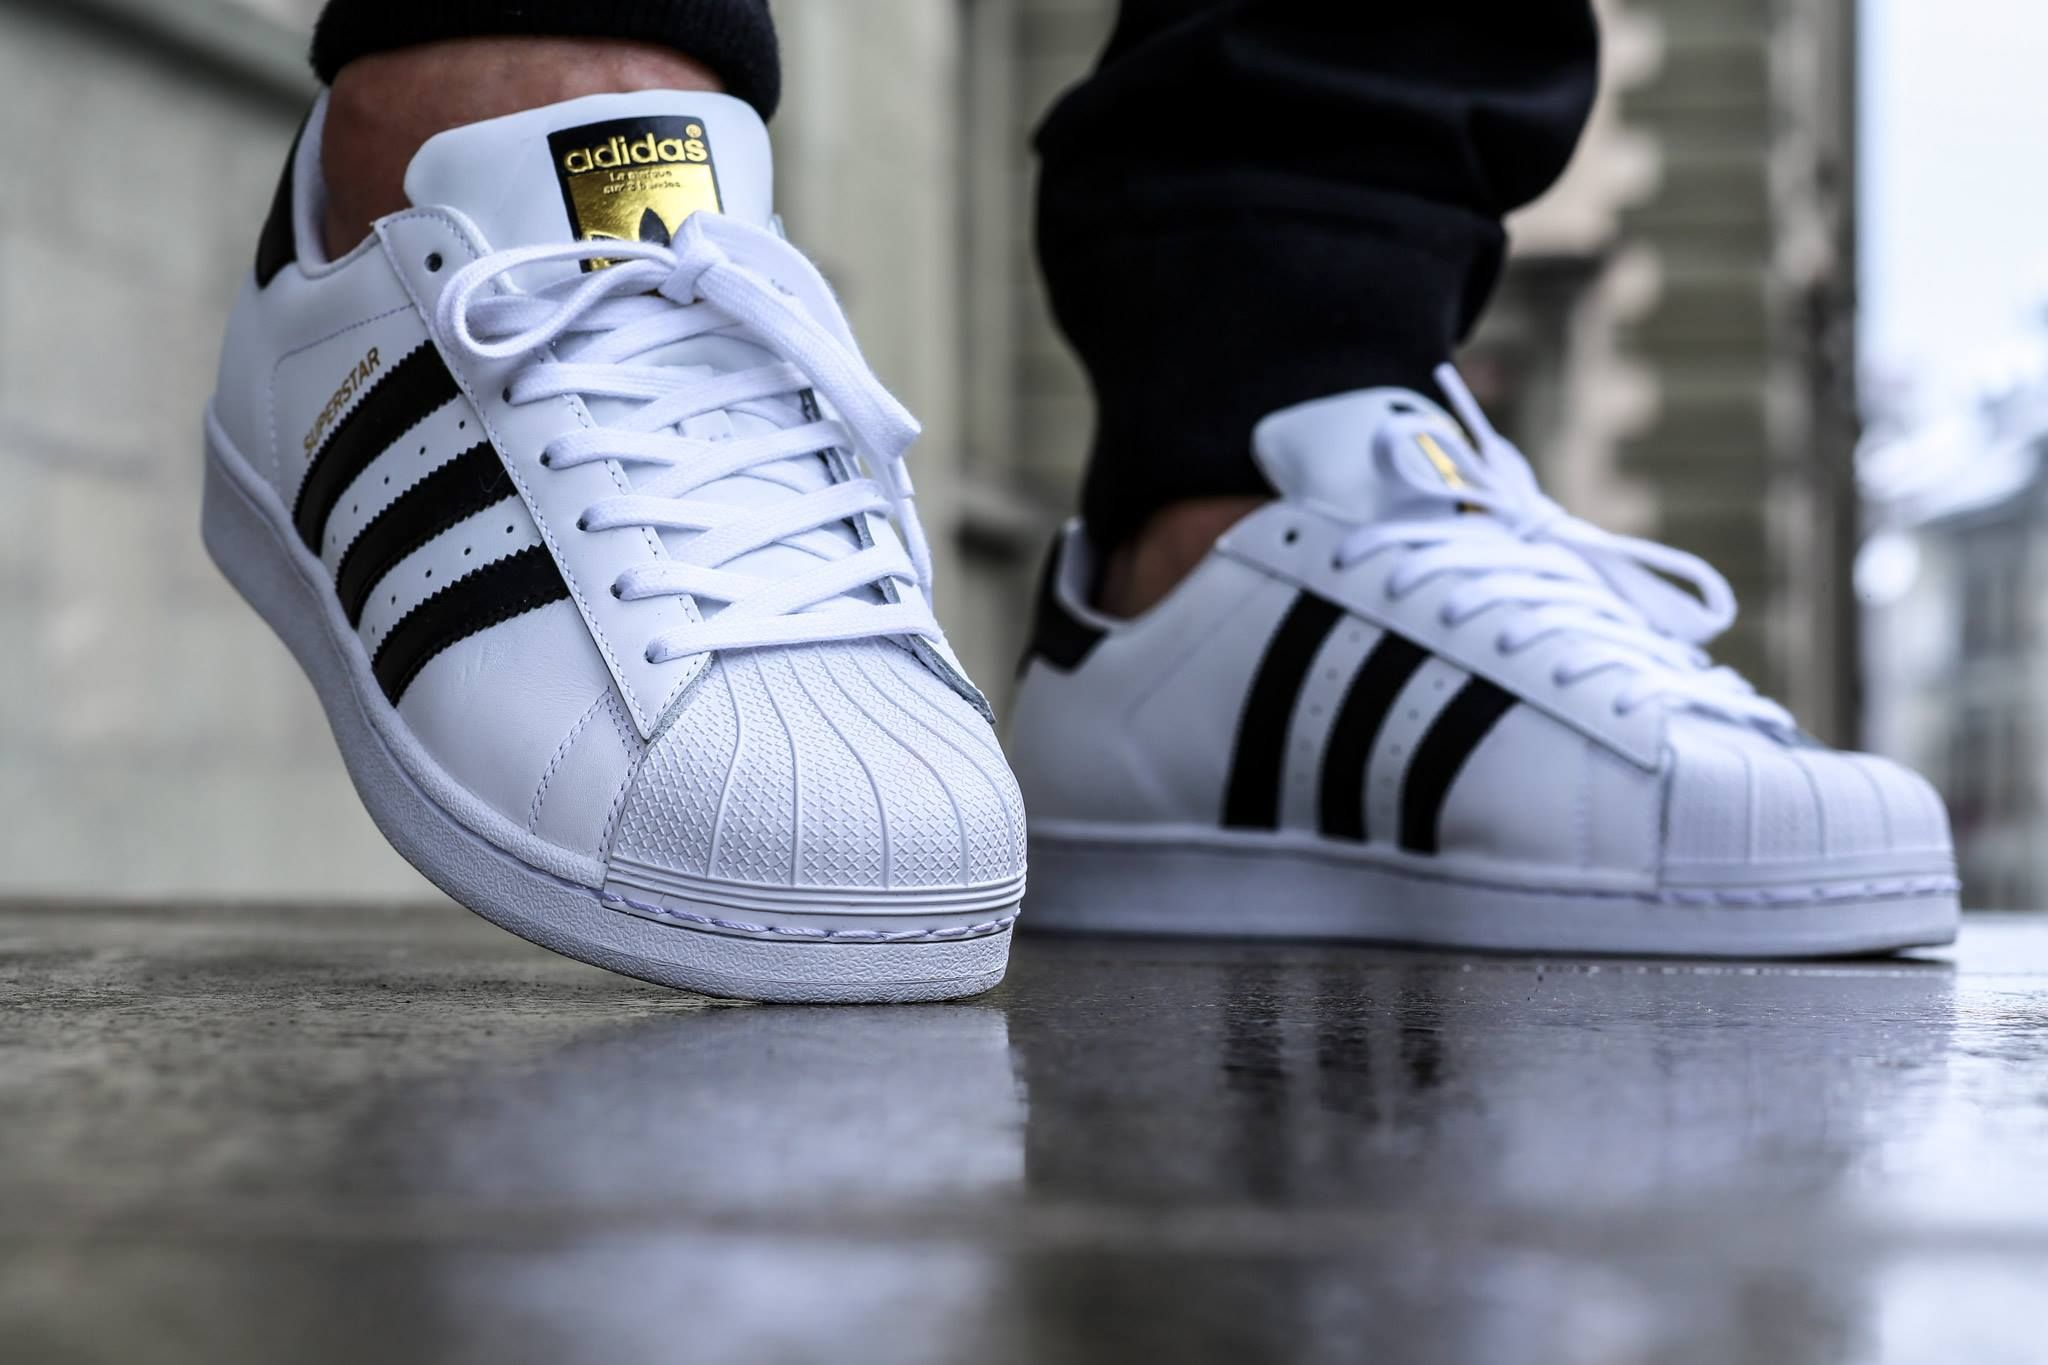 Adidas superstars are really unique. I like how they can easily be  identified by the